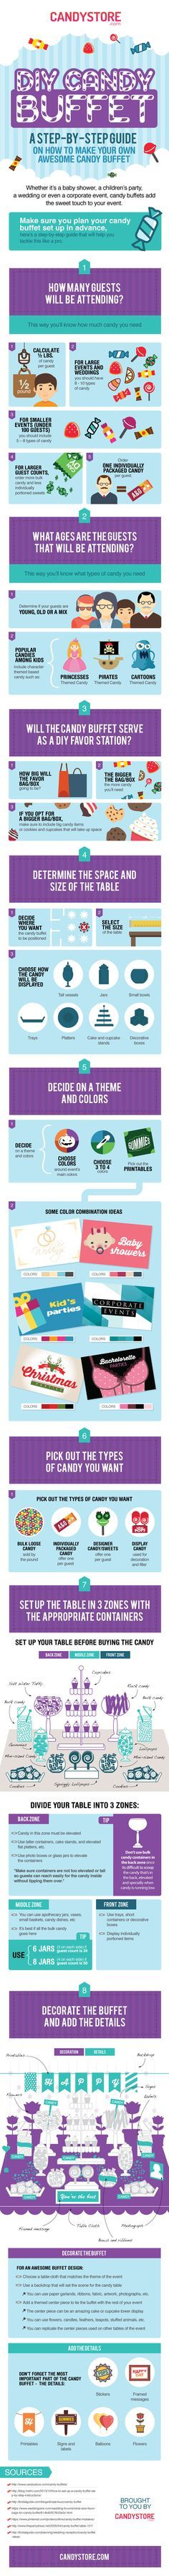 Candy Buffets The Ultimate Guide Infographic